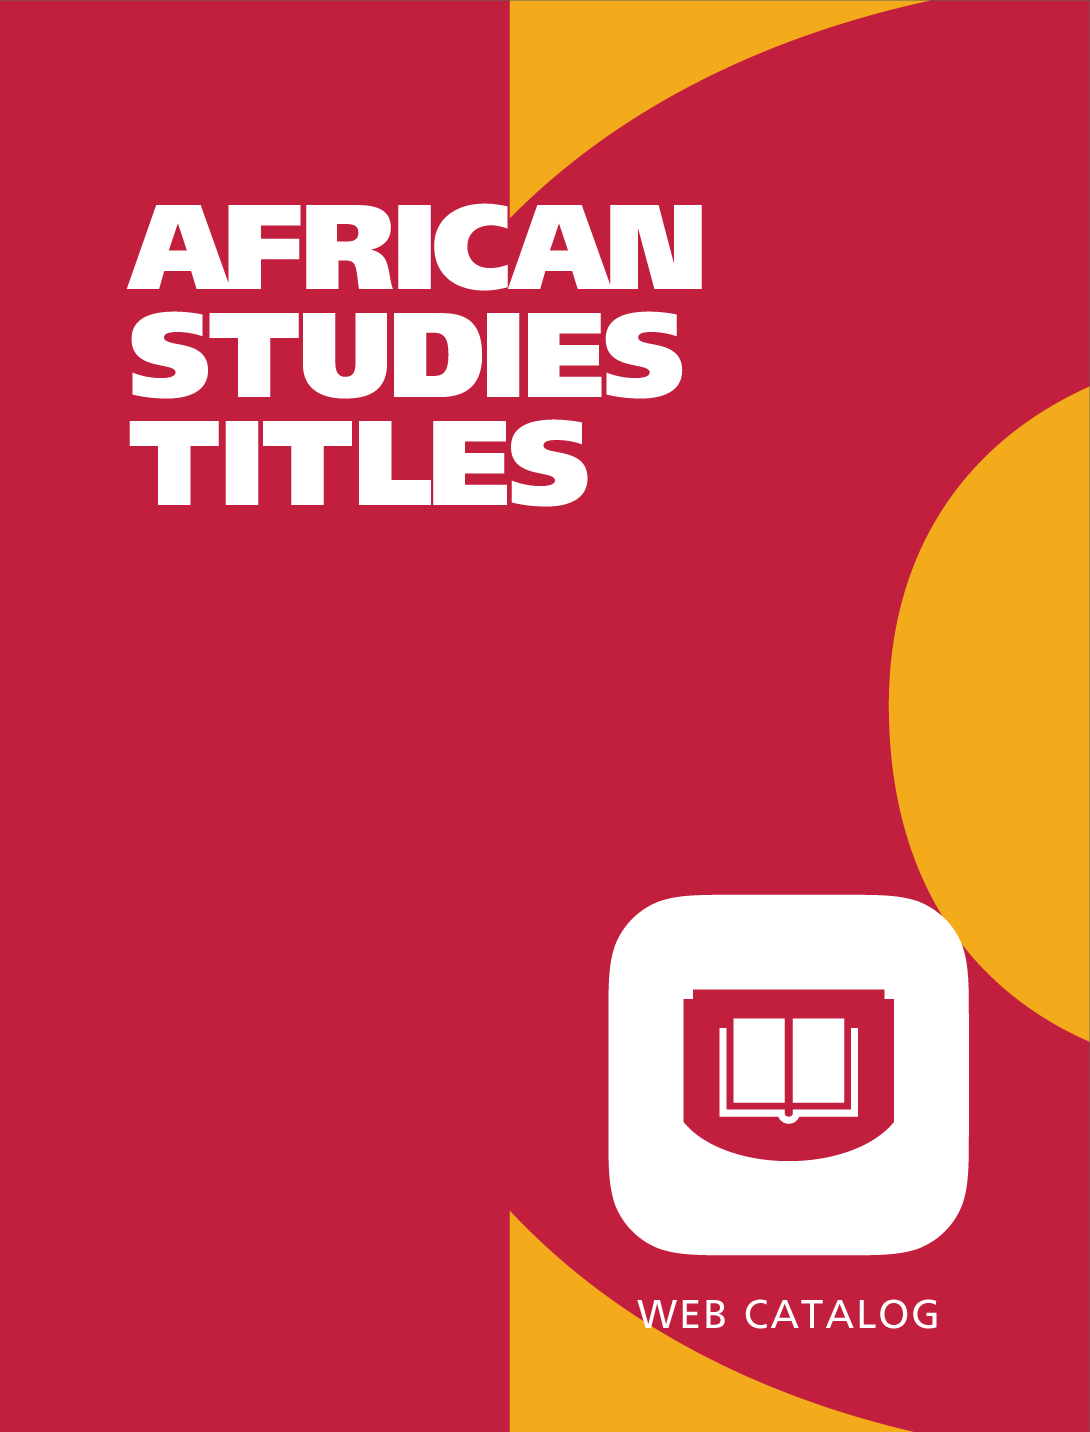 African Studies Titles web catalog